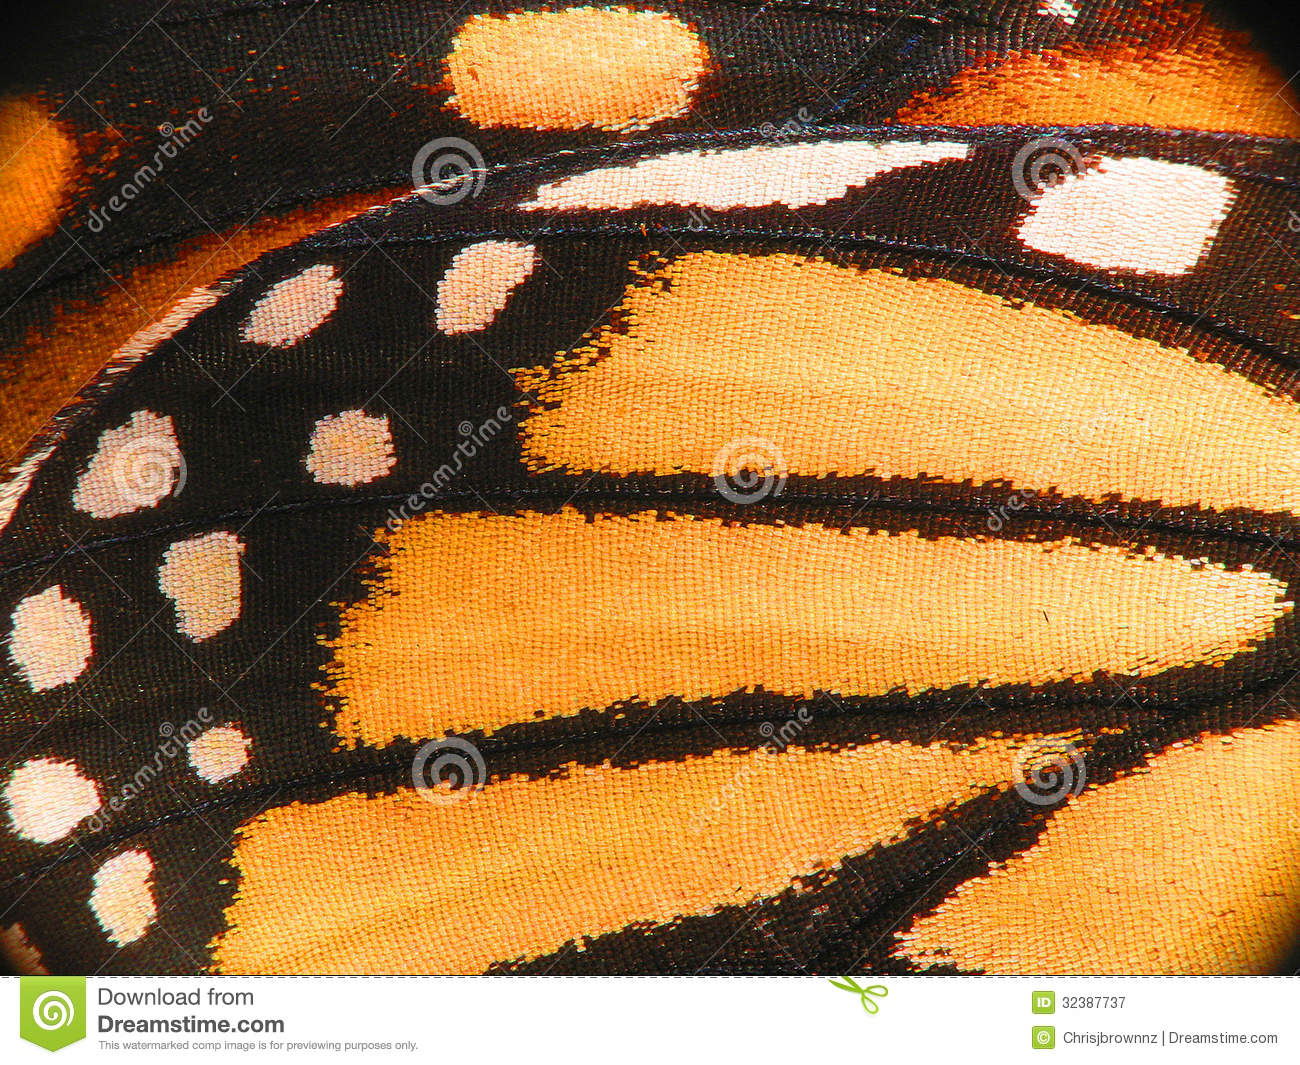 Monarch Butterfly wing macro